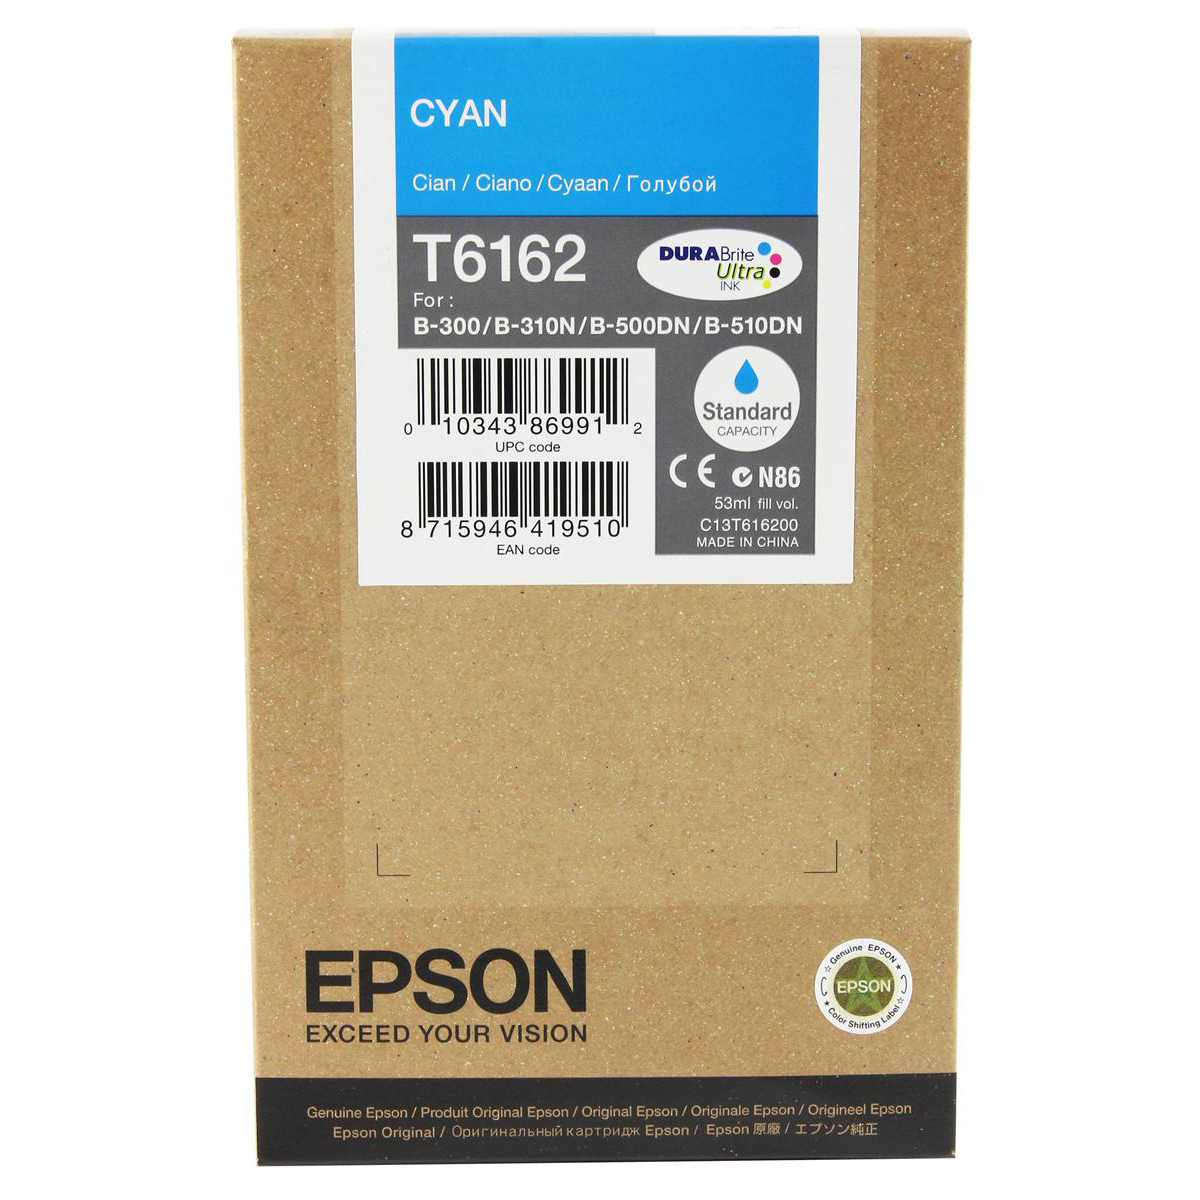 Epson T6162 Inkjet Cartridge Page Life 3500pp 53ml Cyan Ref C13T616200 3to5 Day Leadtime